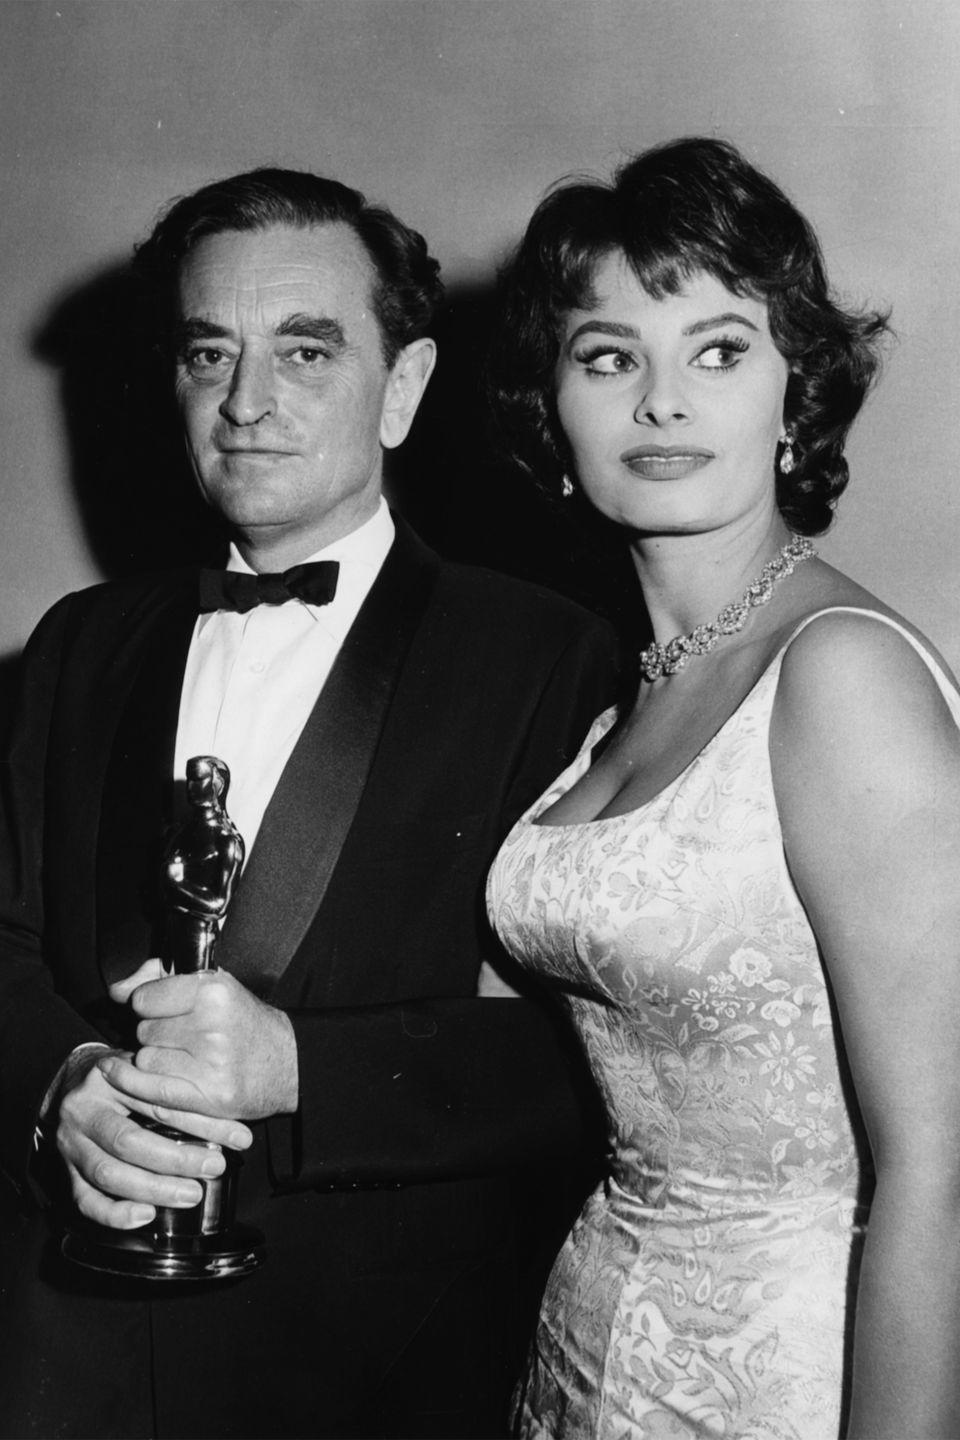 <p>Sophia Loren often dressed to show off her enviable curves, like this figure-hugging satin floral dress—diamond earrings and necklace complete the glamorous look. </p>